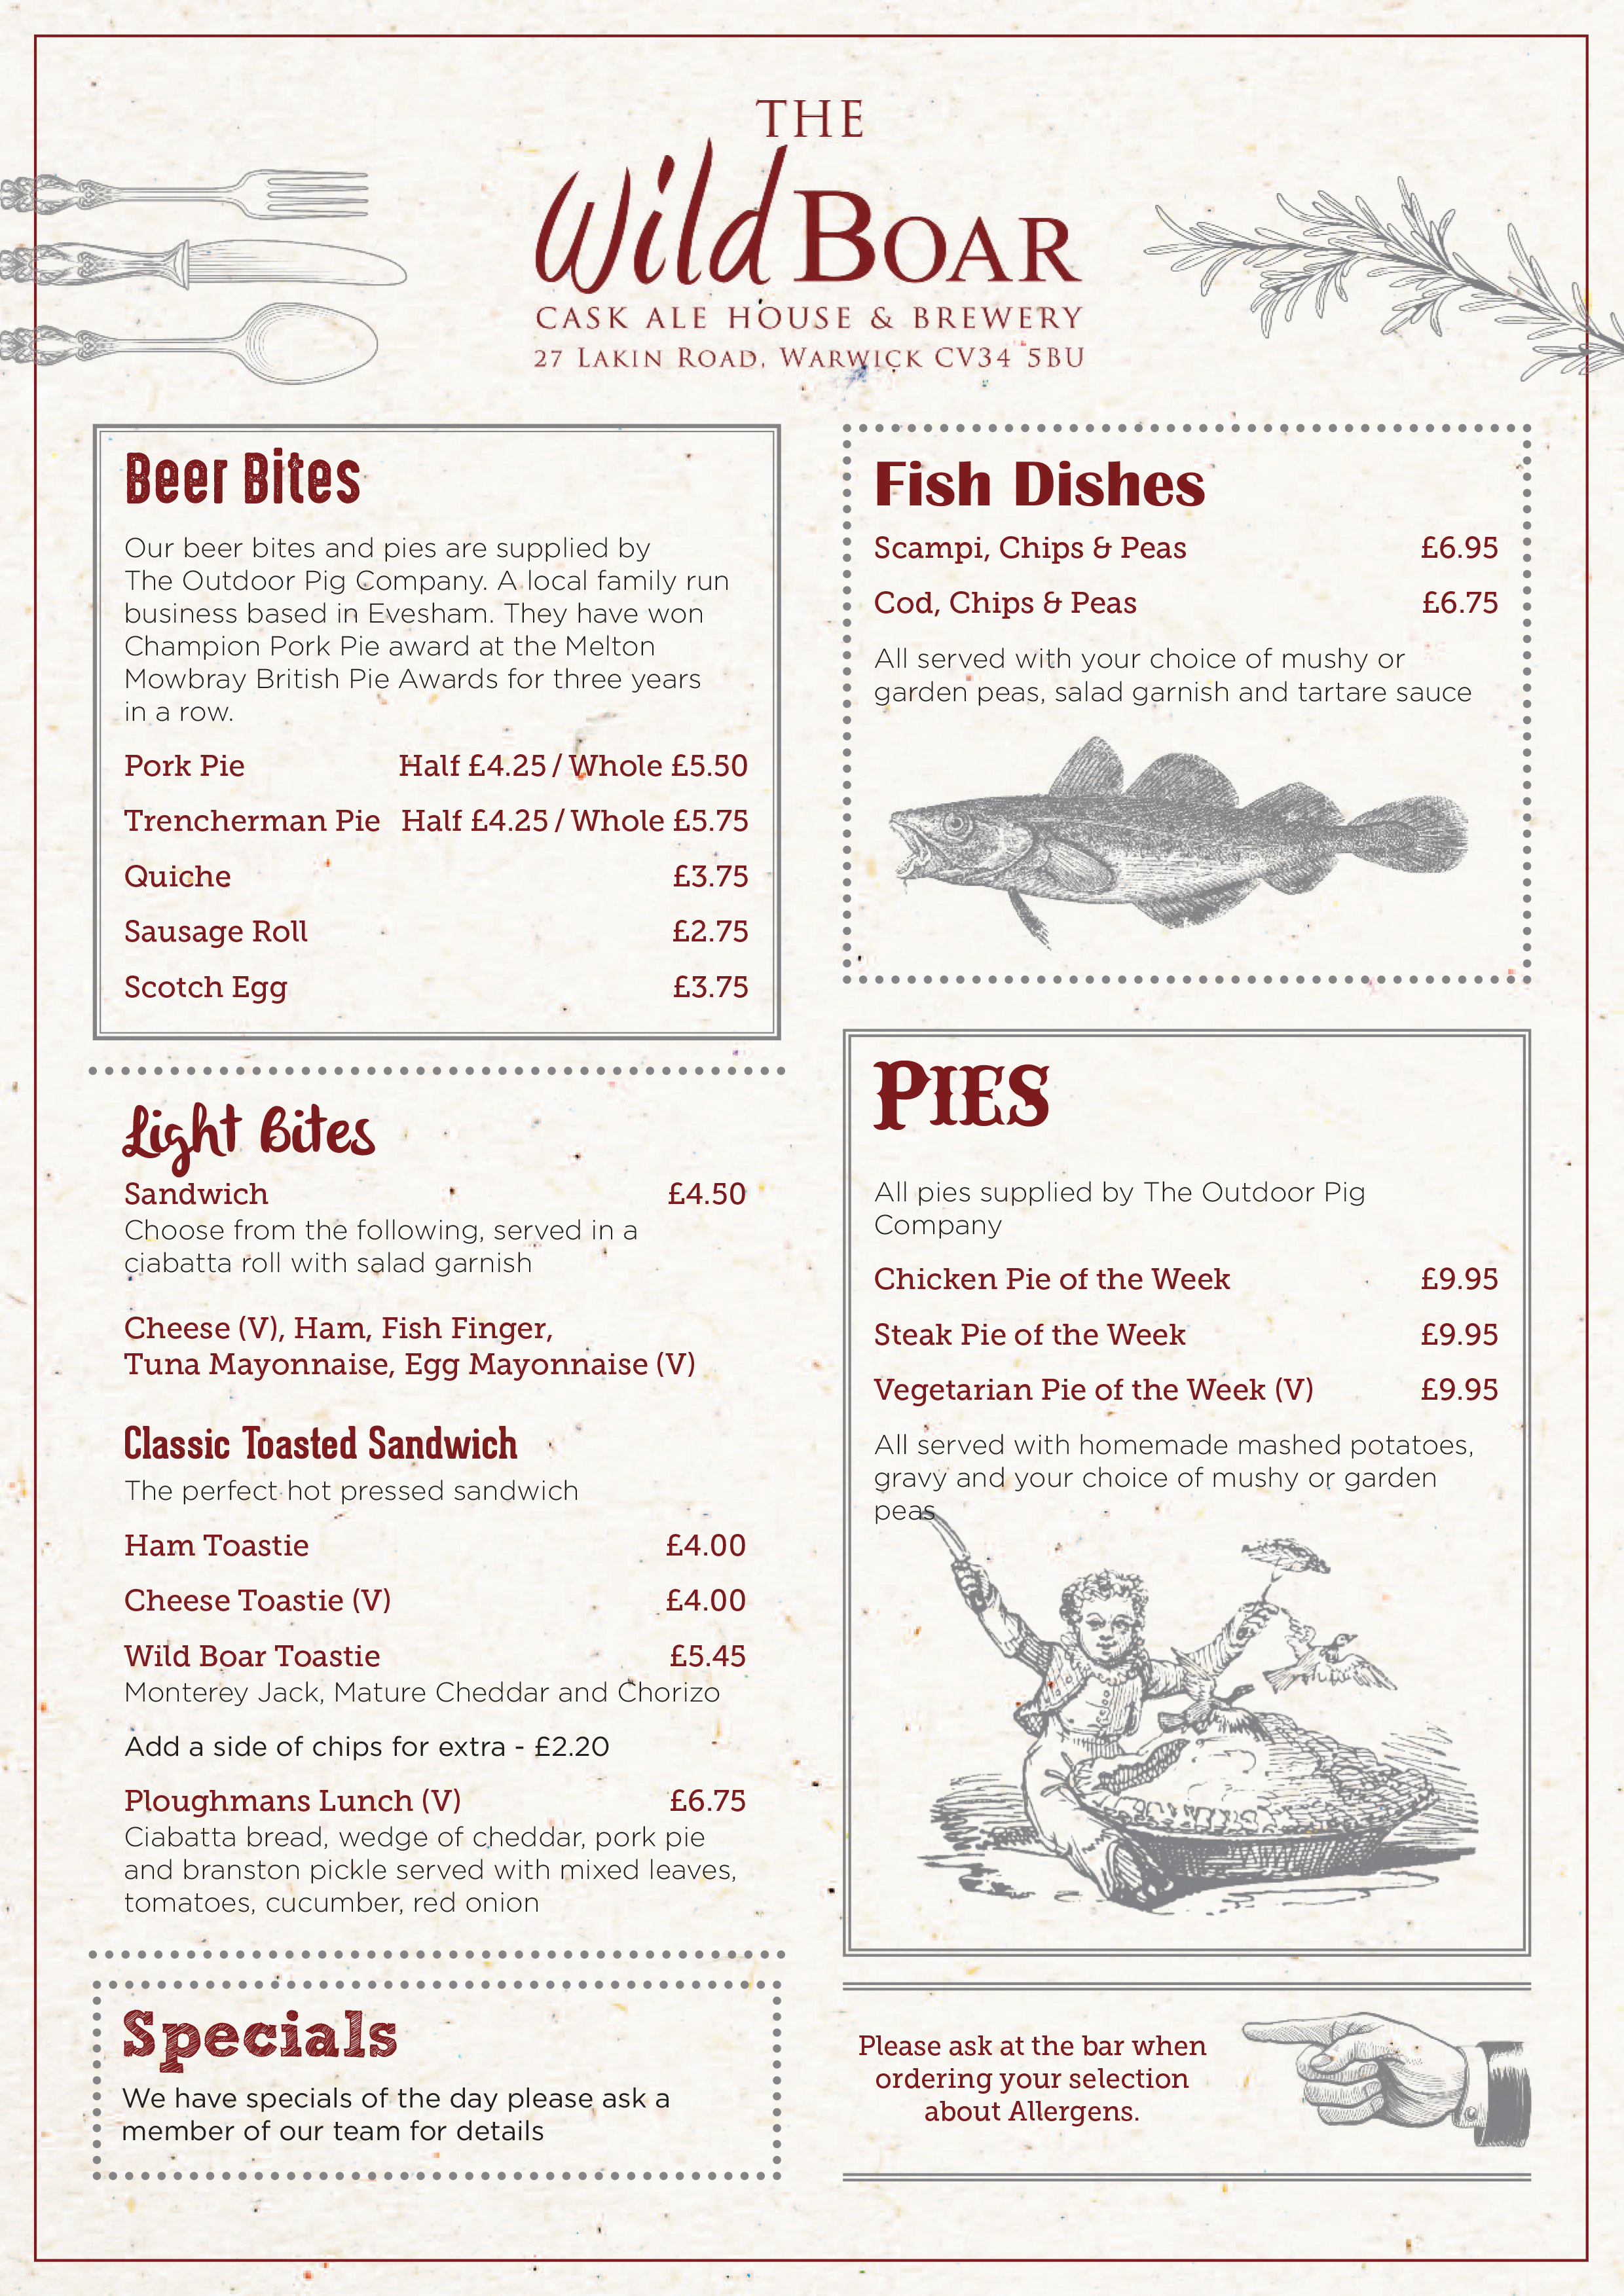 Wild Boar Menu July 2019-1.jpg